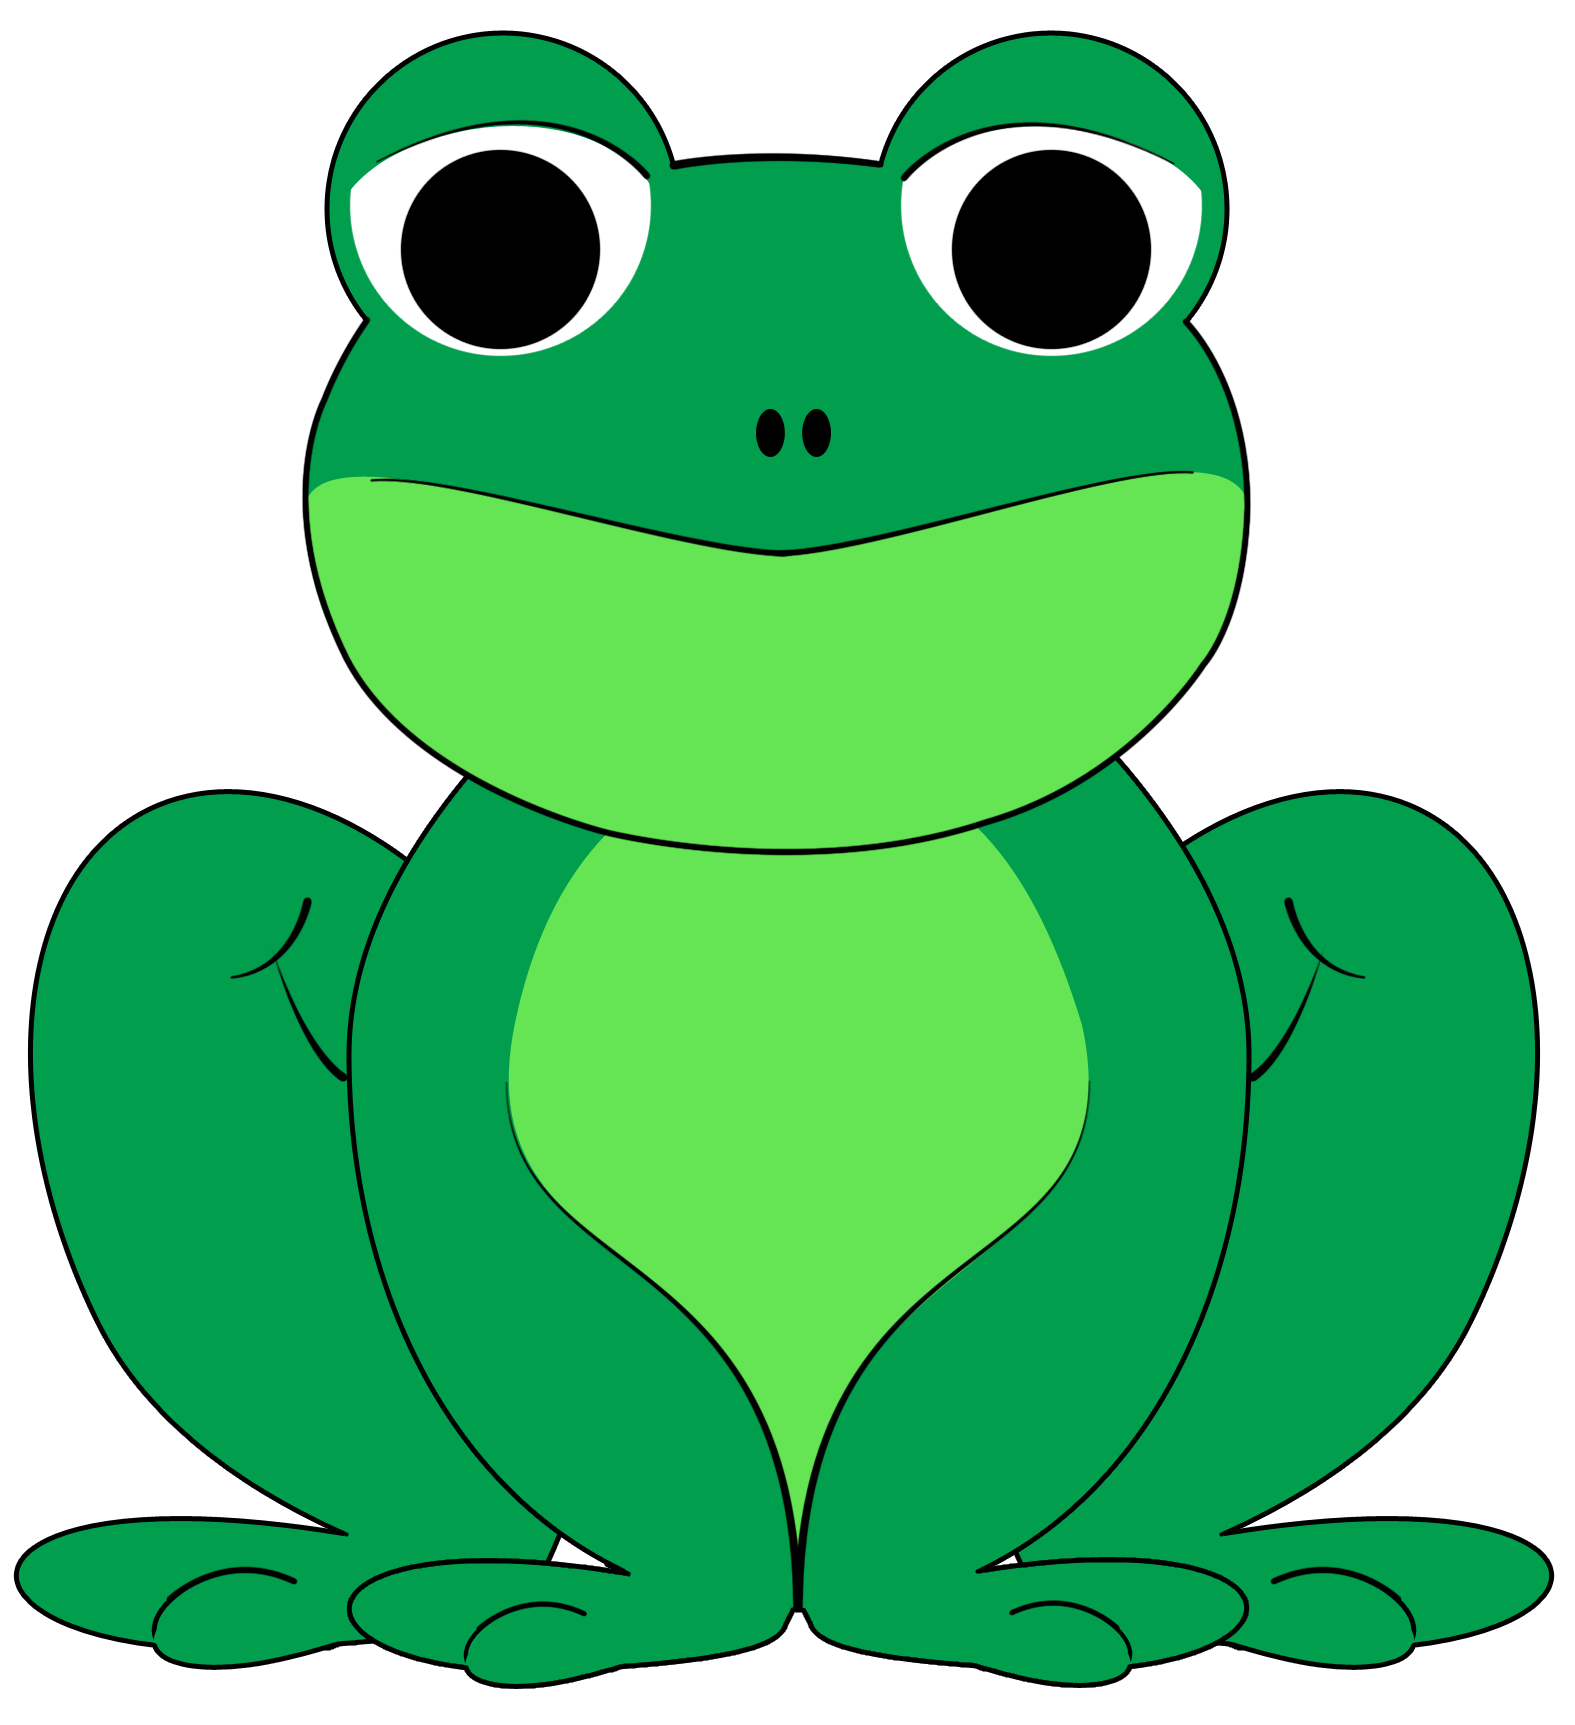 Frogs drawing crown. Frog prince silhouette at